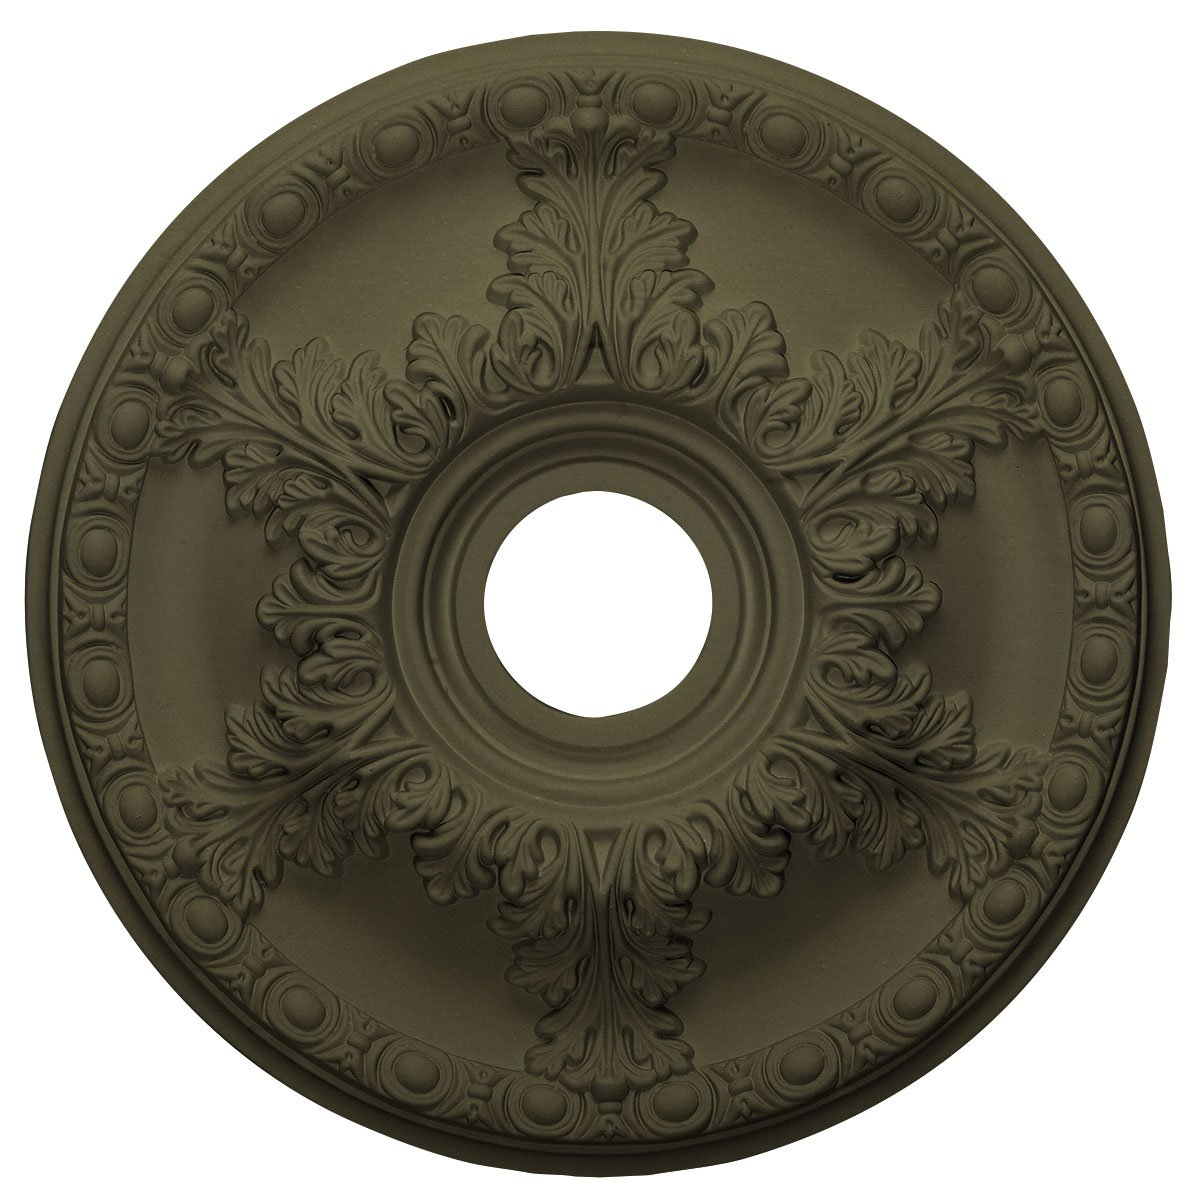 Ekena Millwork CM18GAWHF Granada Ceiling Medallion fits Canopies up to 6 5/8'', Witch Hazel